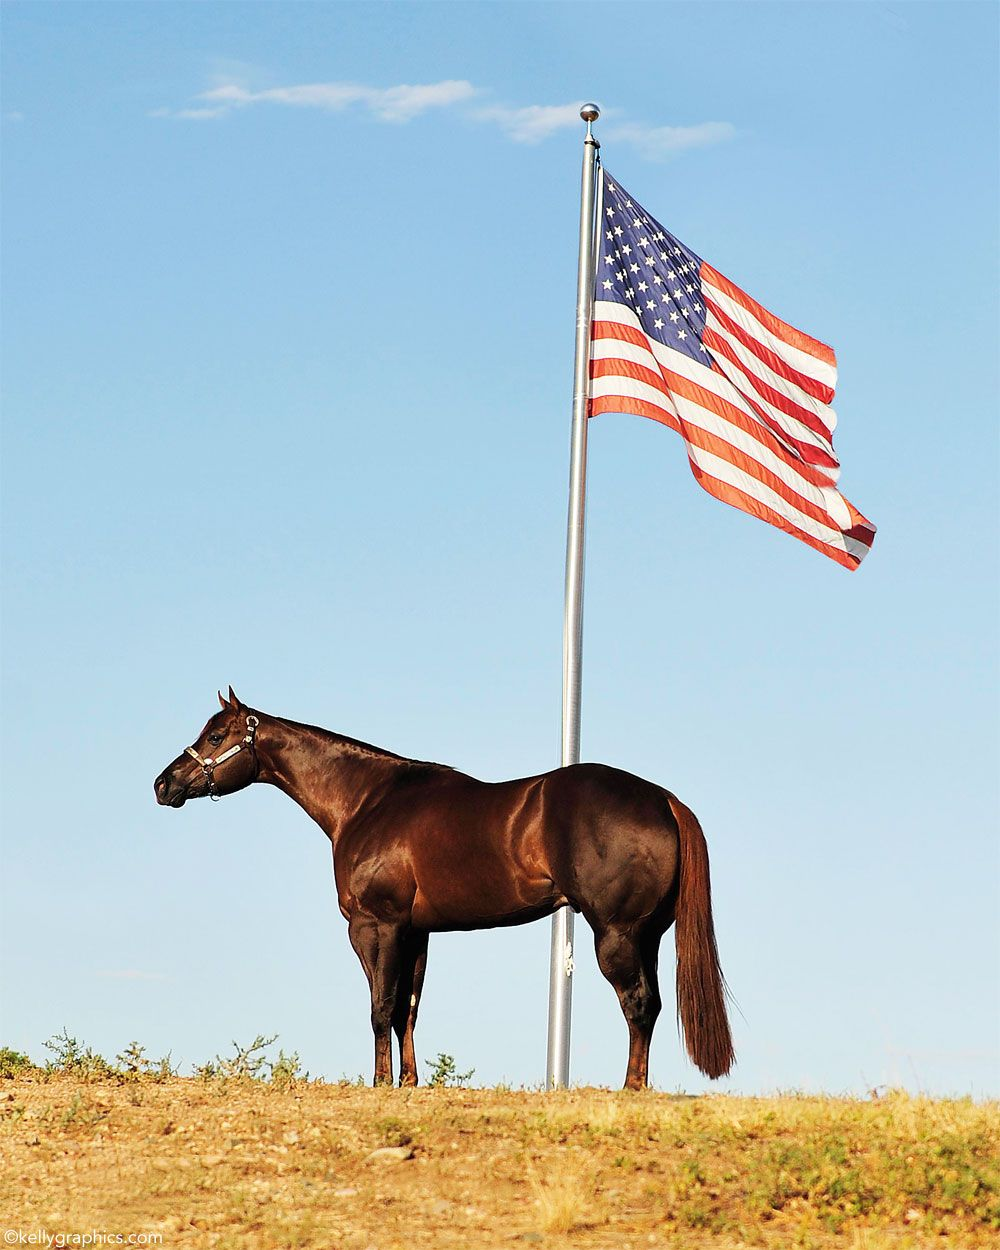 The American Quarter Horse is a proven success in many